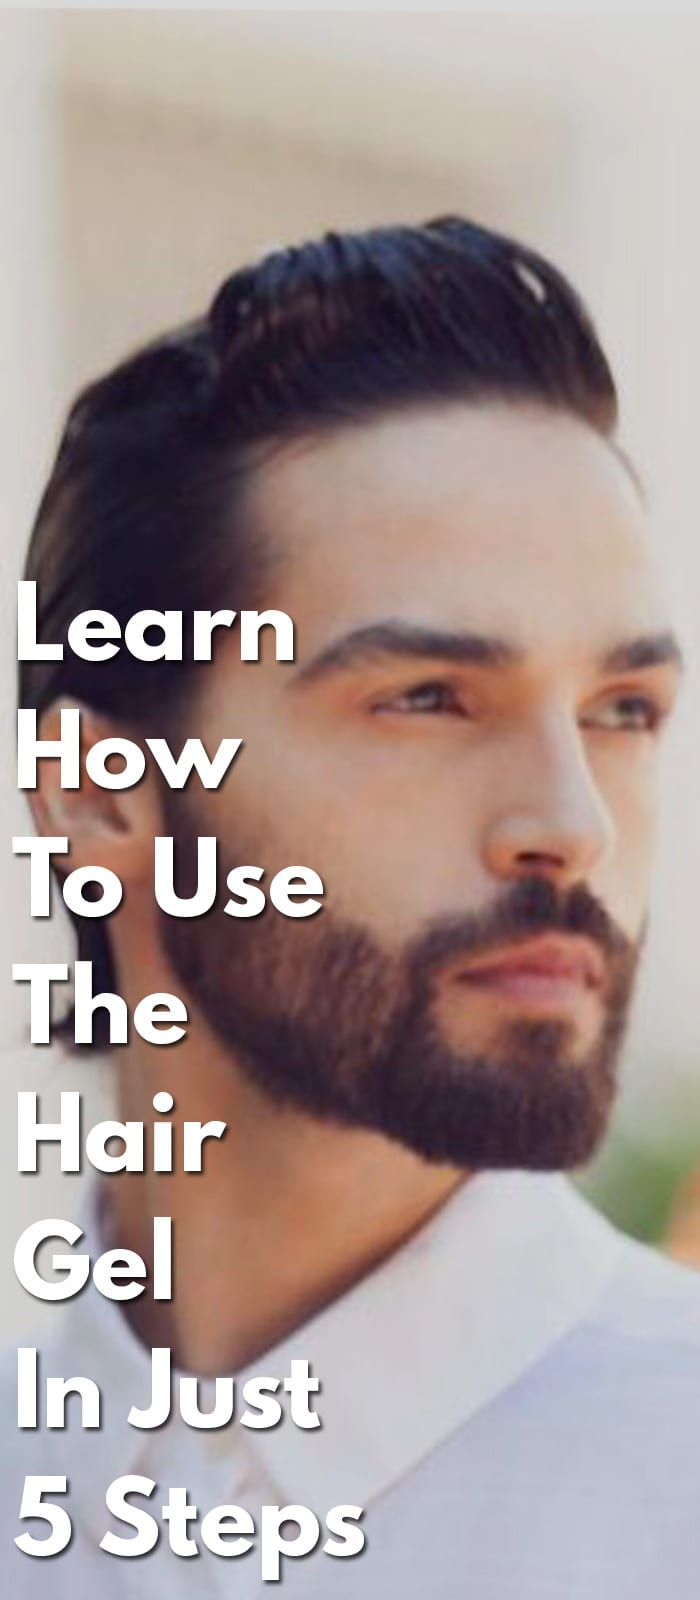 Learn-How-To-Use-The-Hair-Gel-In-Just-5-Steps